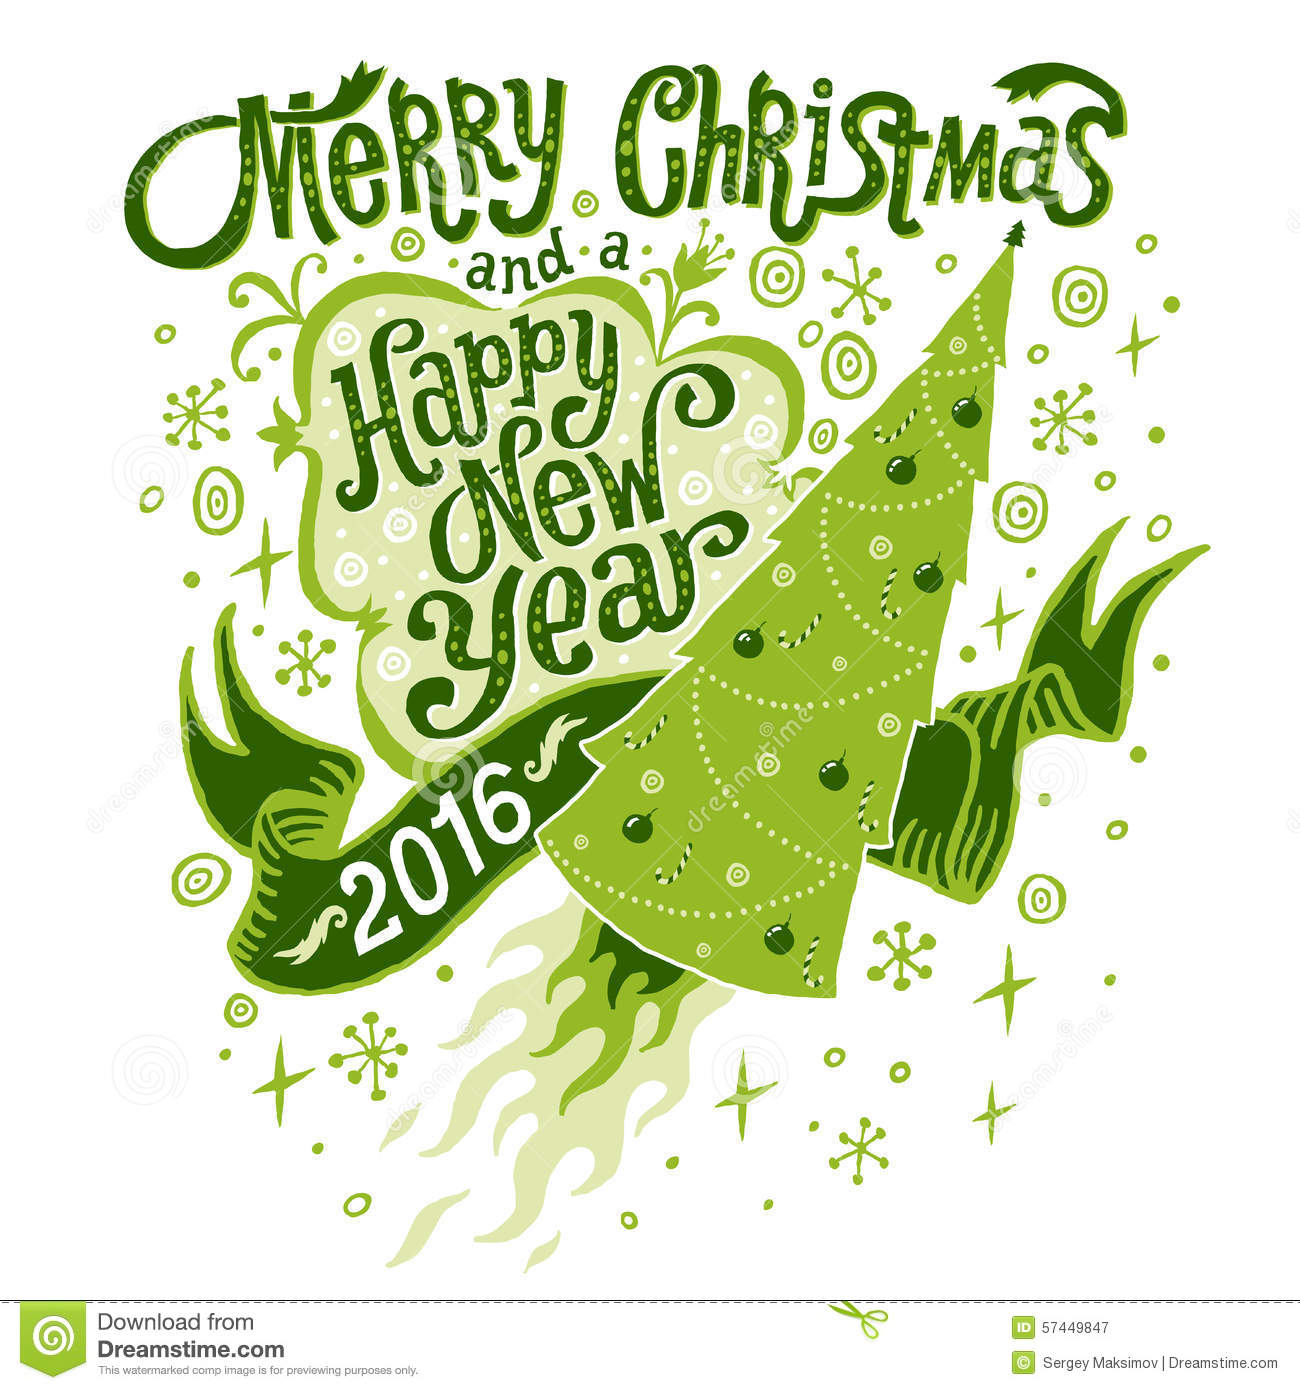 merry christmas and happy new year 2016 greeting card